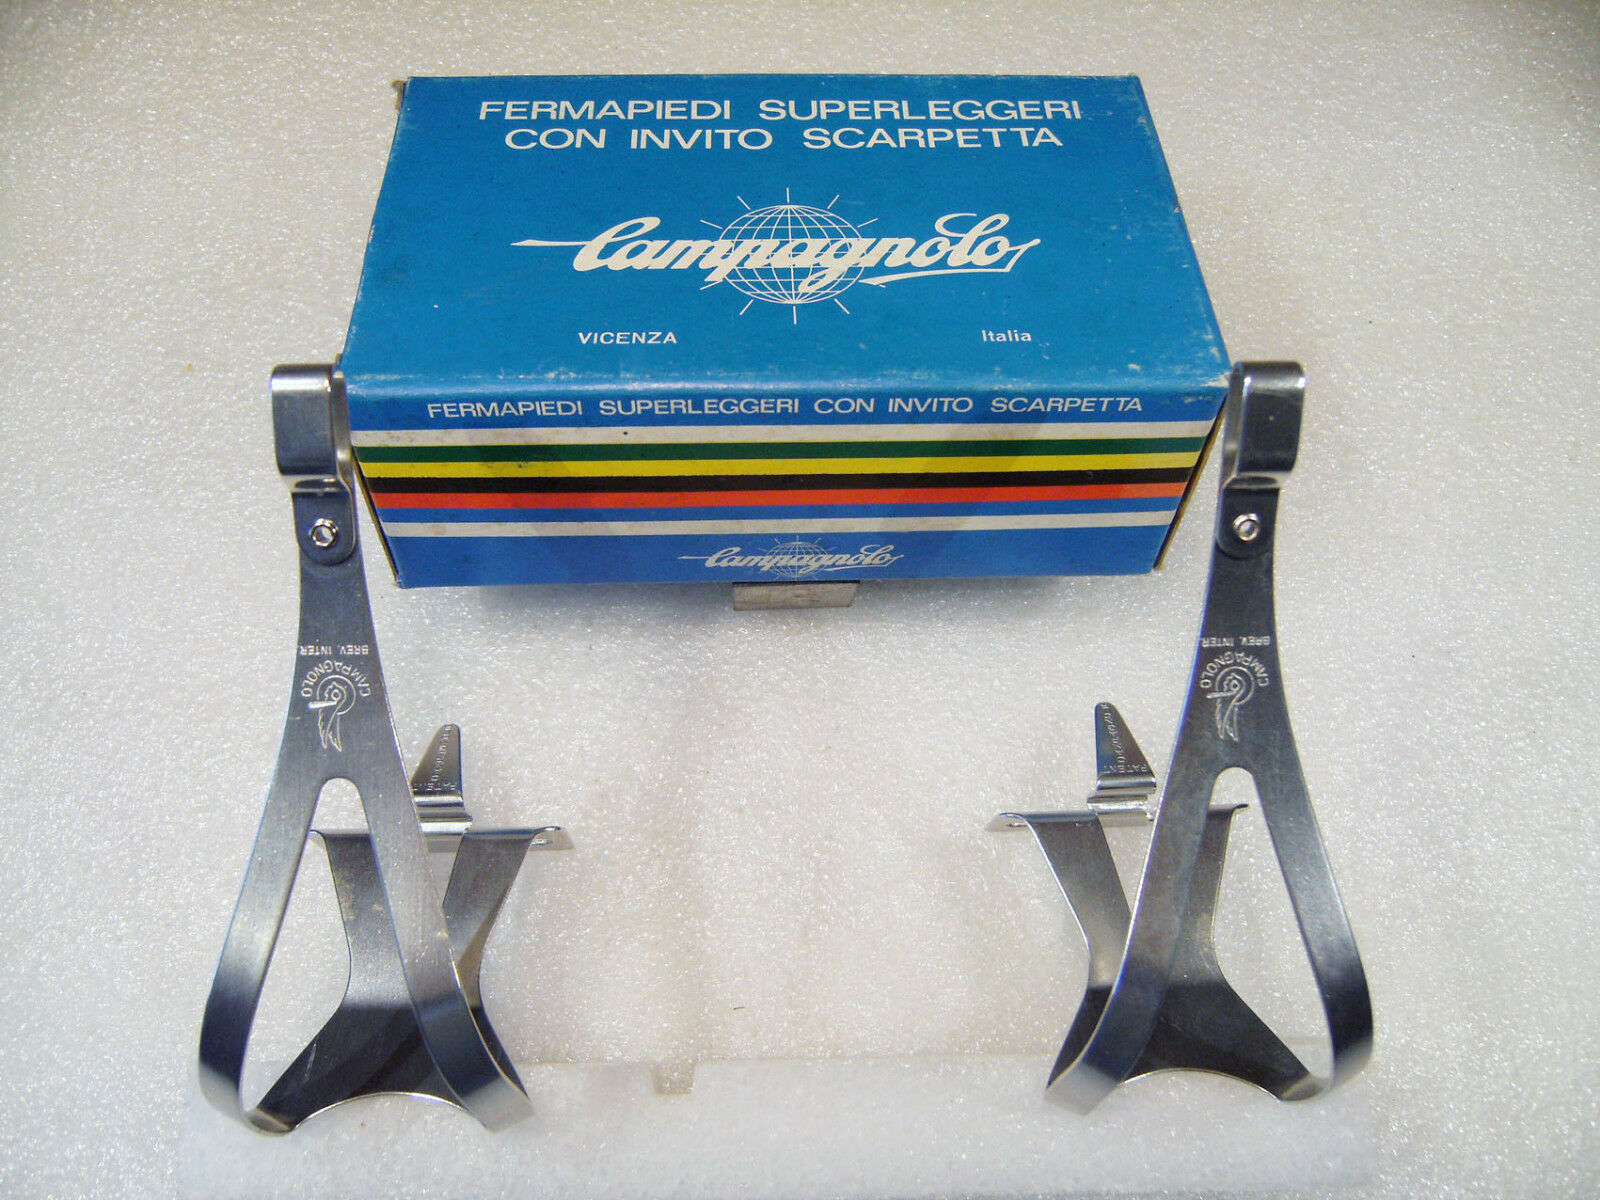 Vintage NOS CAMPAGNOLO SUPER  RECORD TOECLIPS , size M, Mint & Boxed  the lowest price